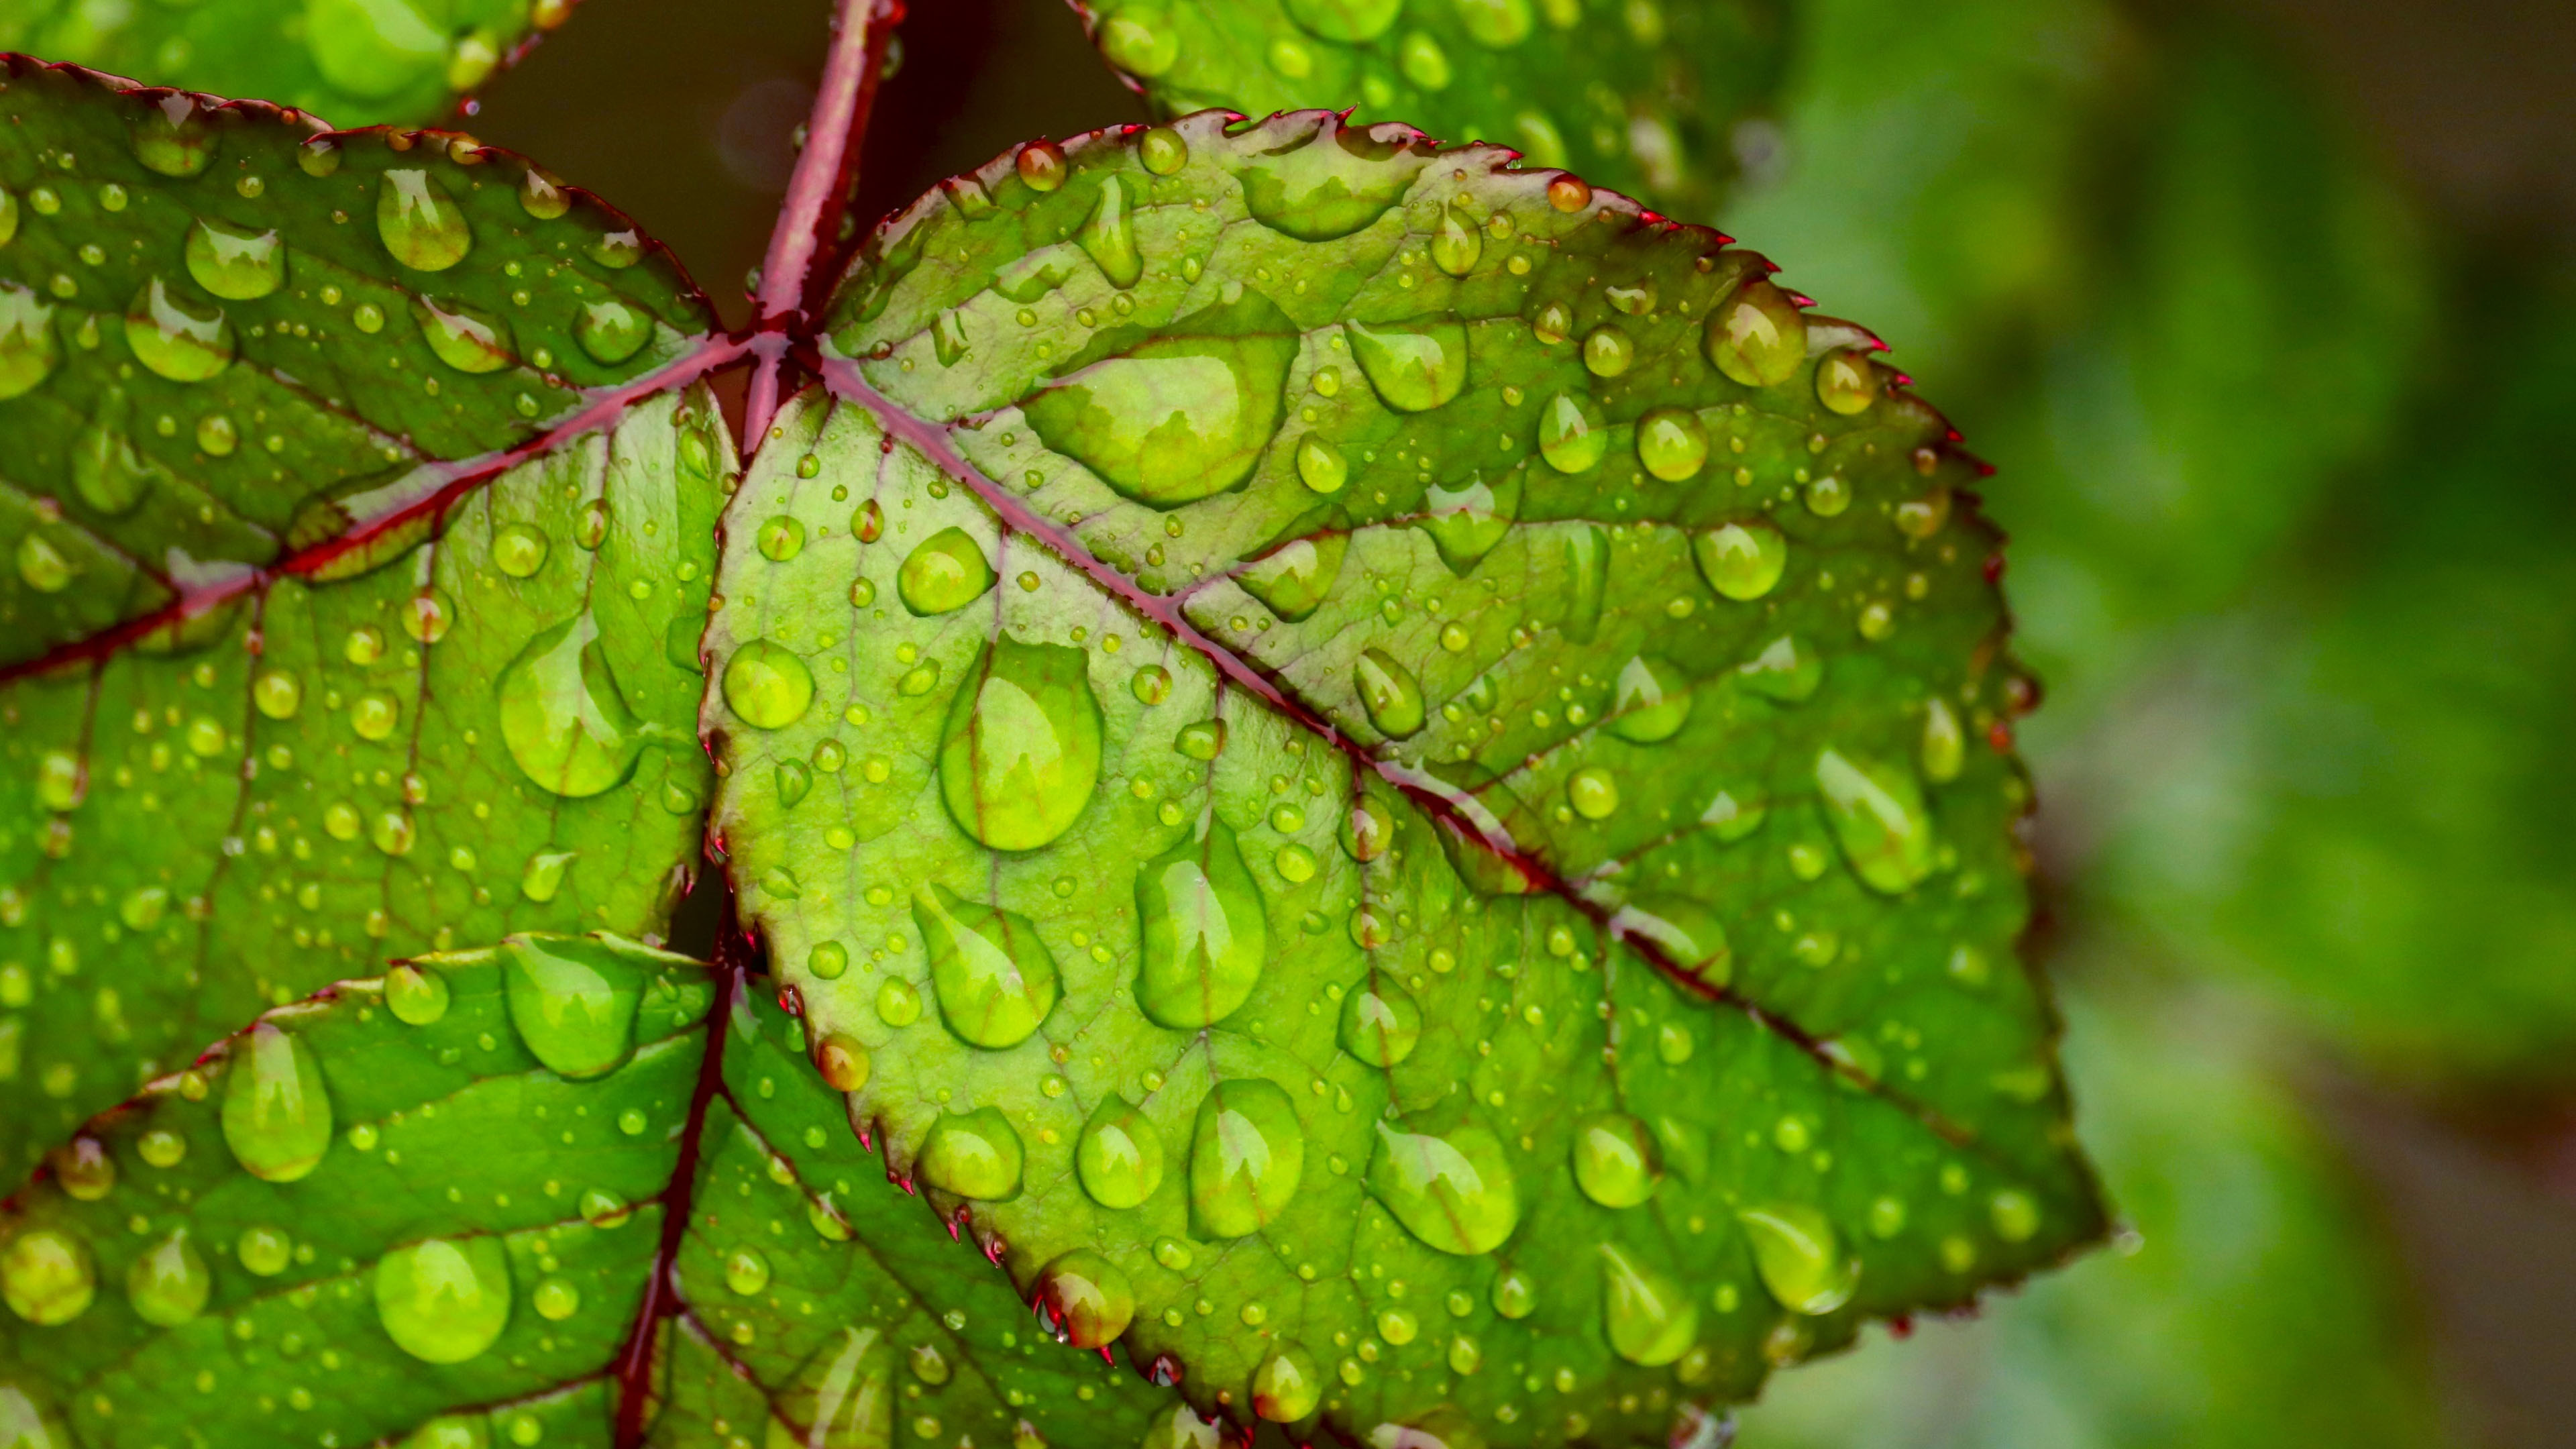 Free Download Wallpaper Apple 3d Water Droplets On Green Leaf 4k Ultra Hd Wallpapers For